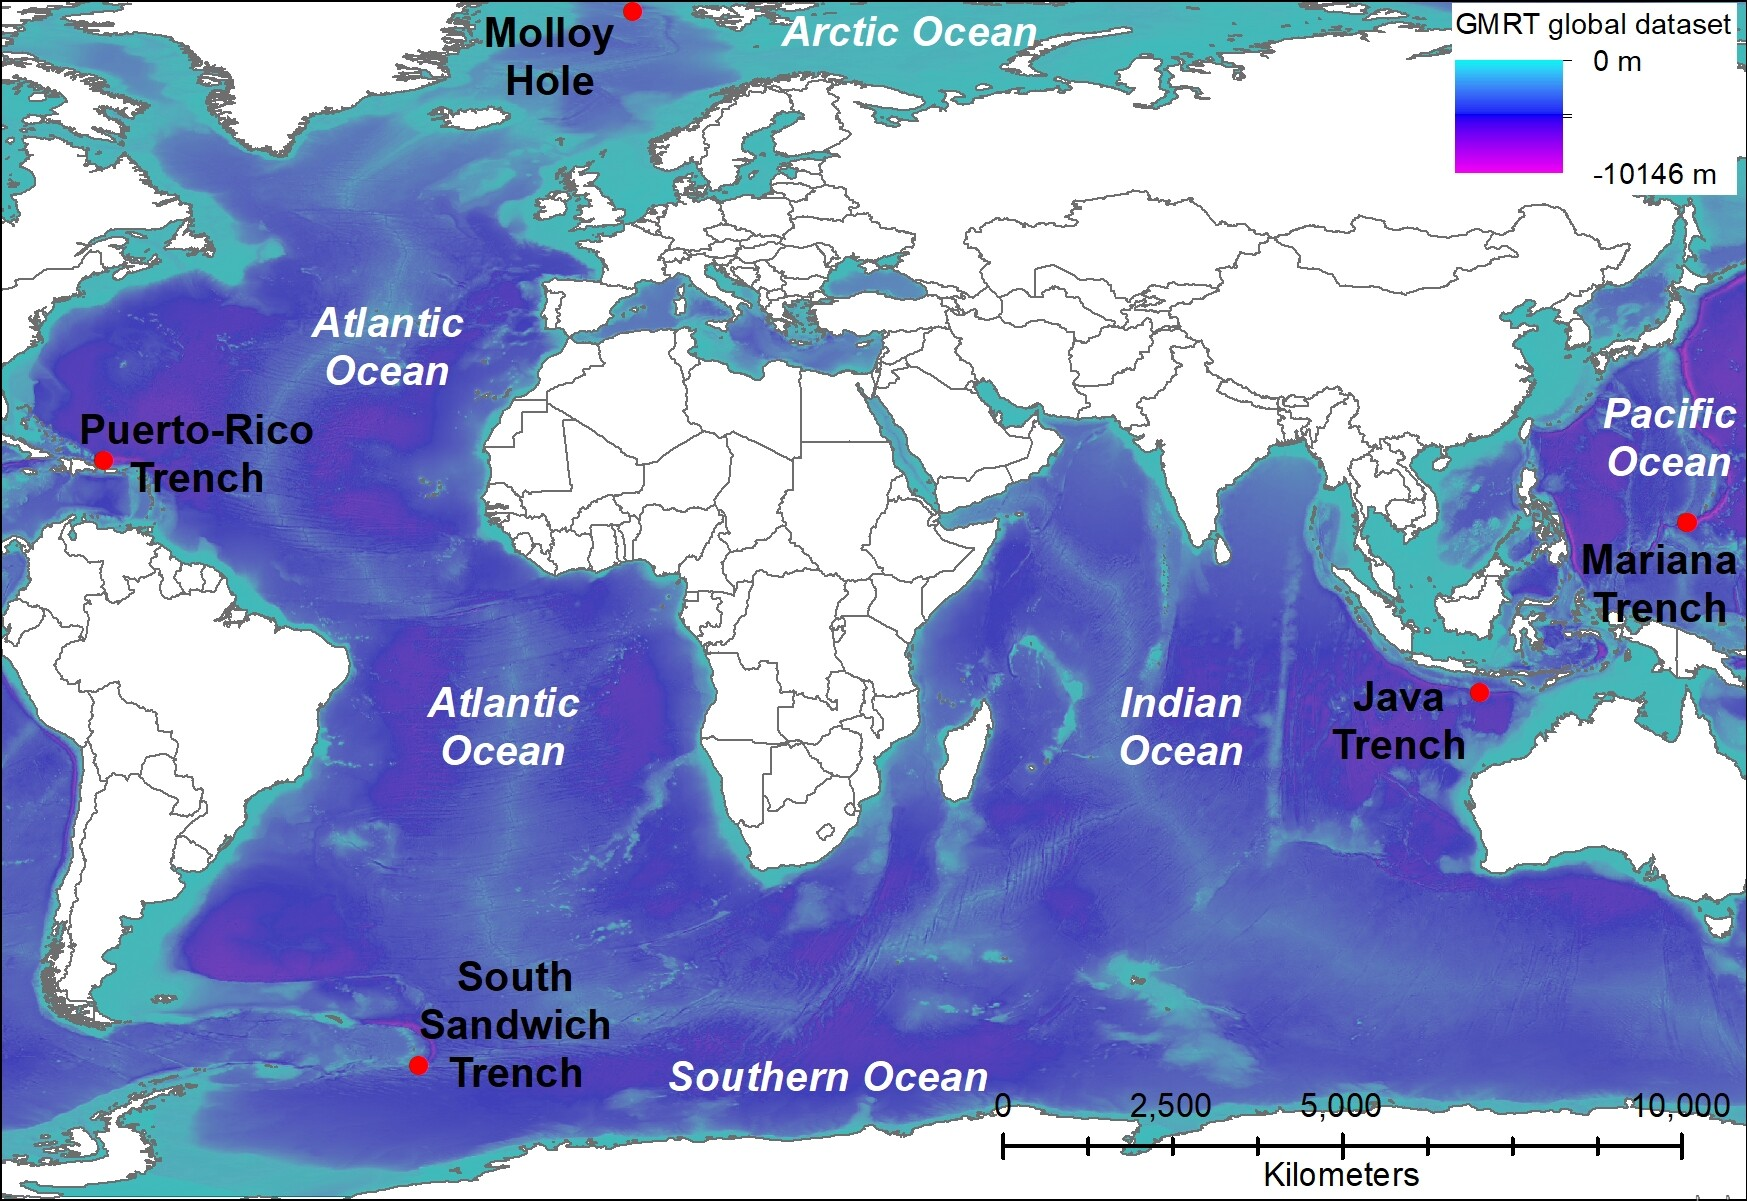 what is the deepest point in the arctic ocean?